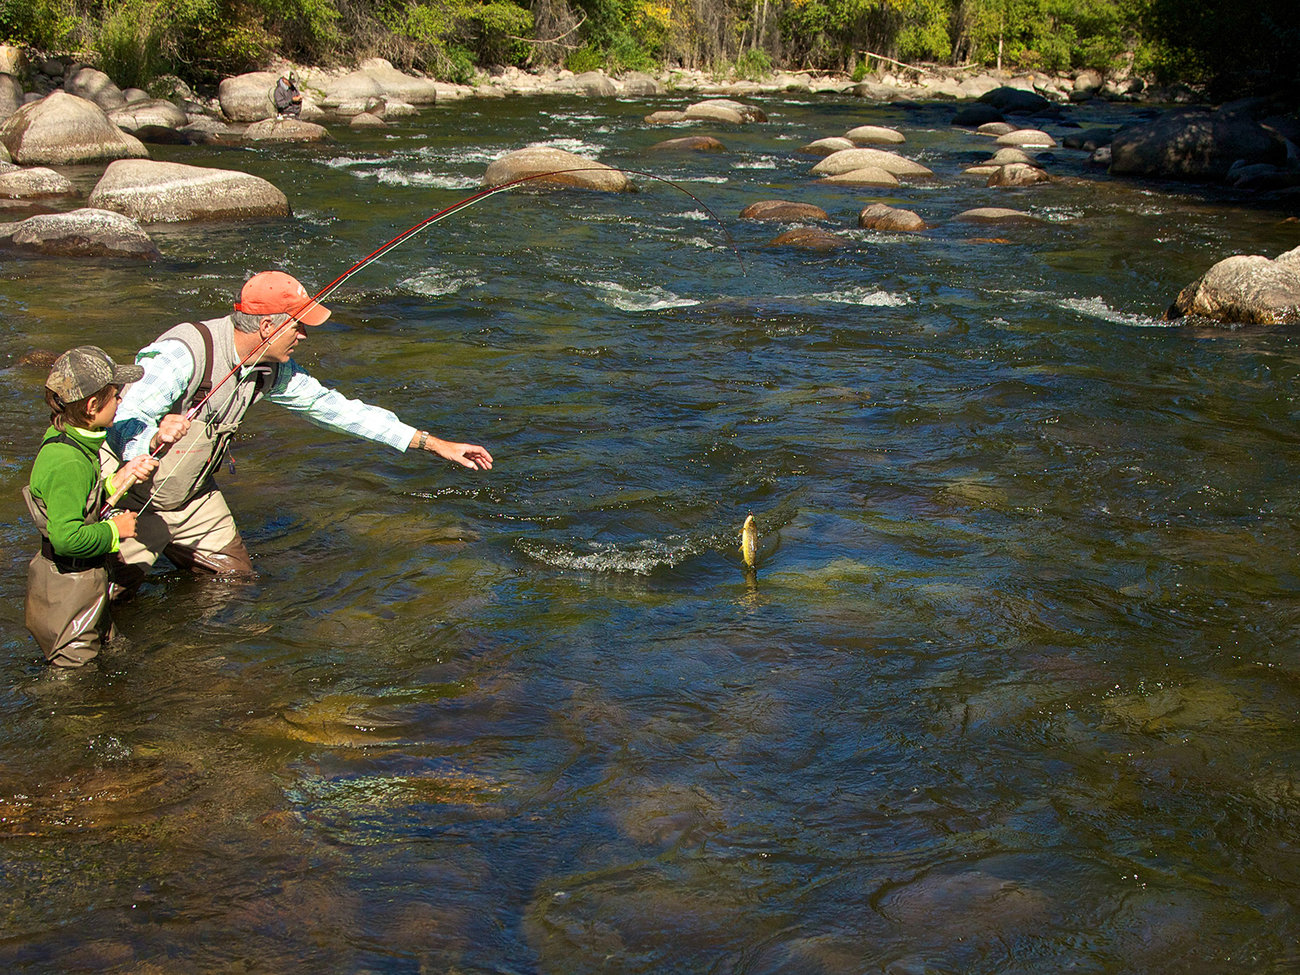 Gore Creek Fly Fisherman in Vail